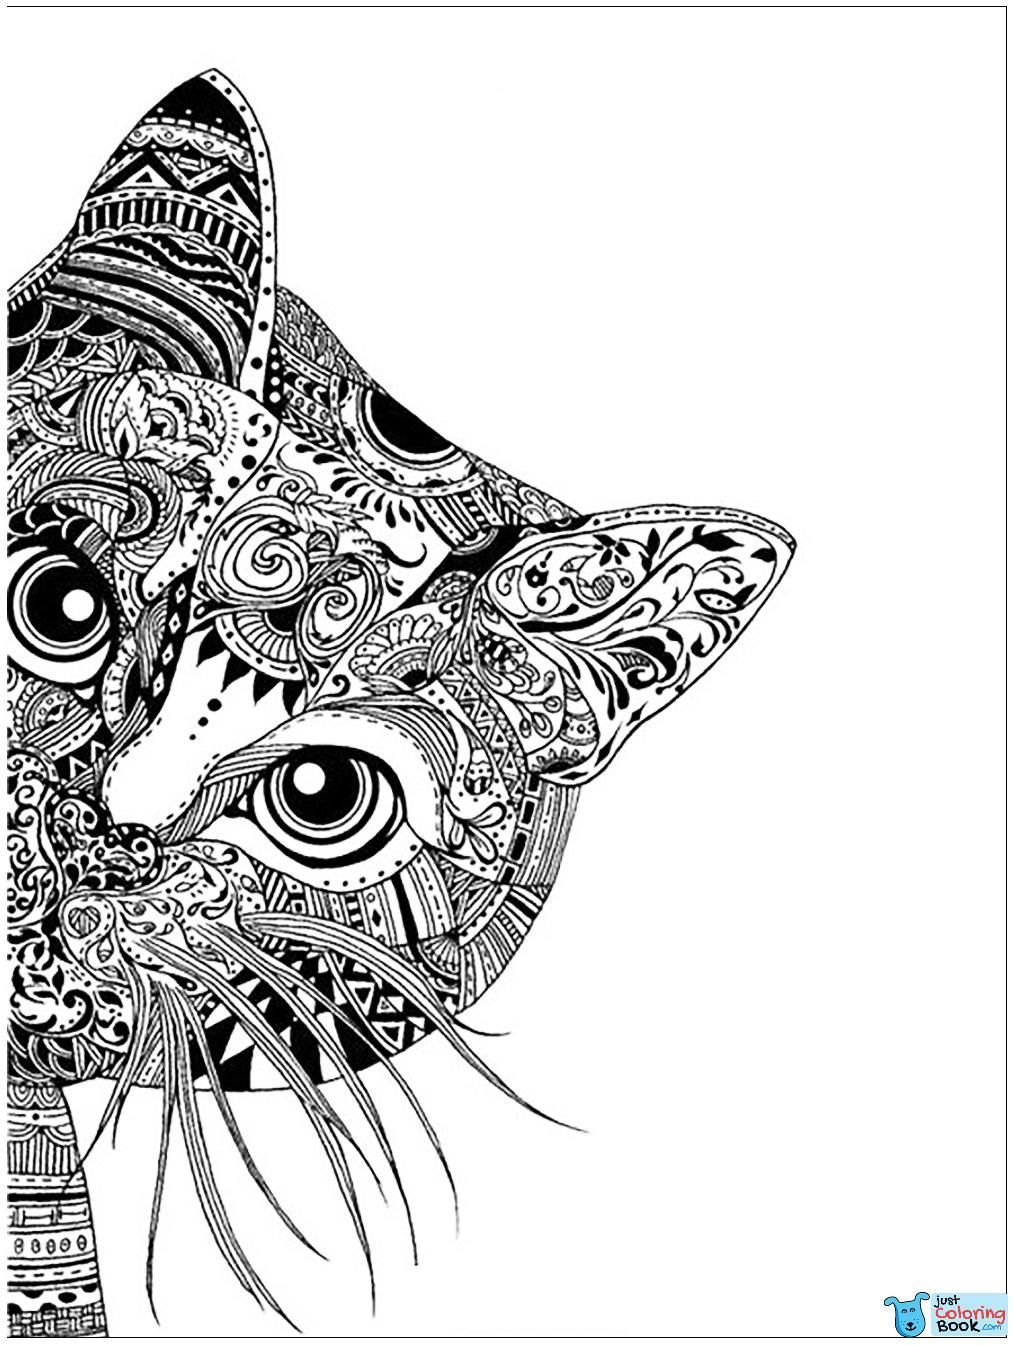 Cat Head Cats Adult Coloring Pages In Free Printable Cat In